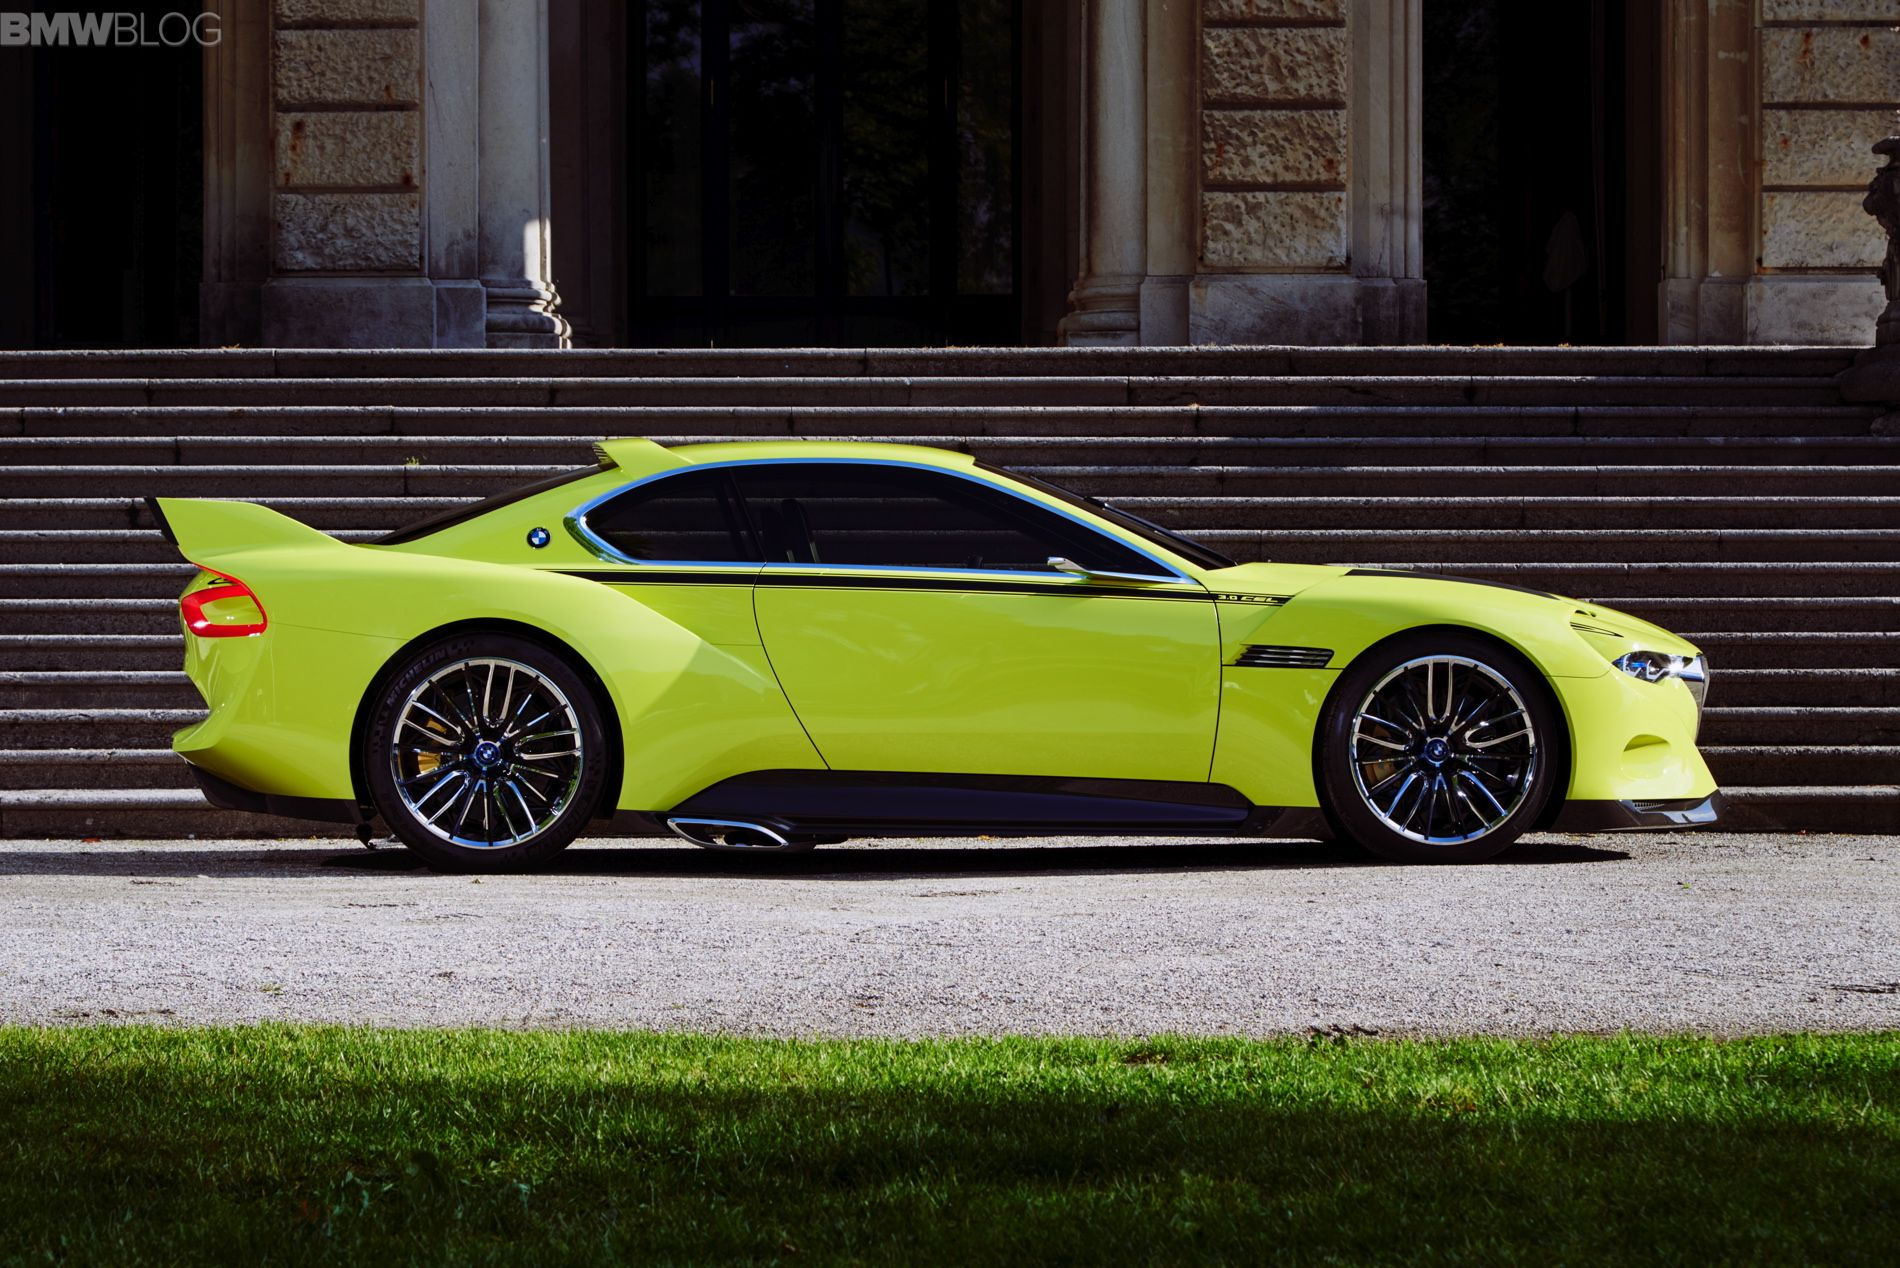 BMW 3.0 CSL Hommage Photos From Concorso d'Eleganza